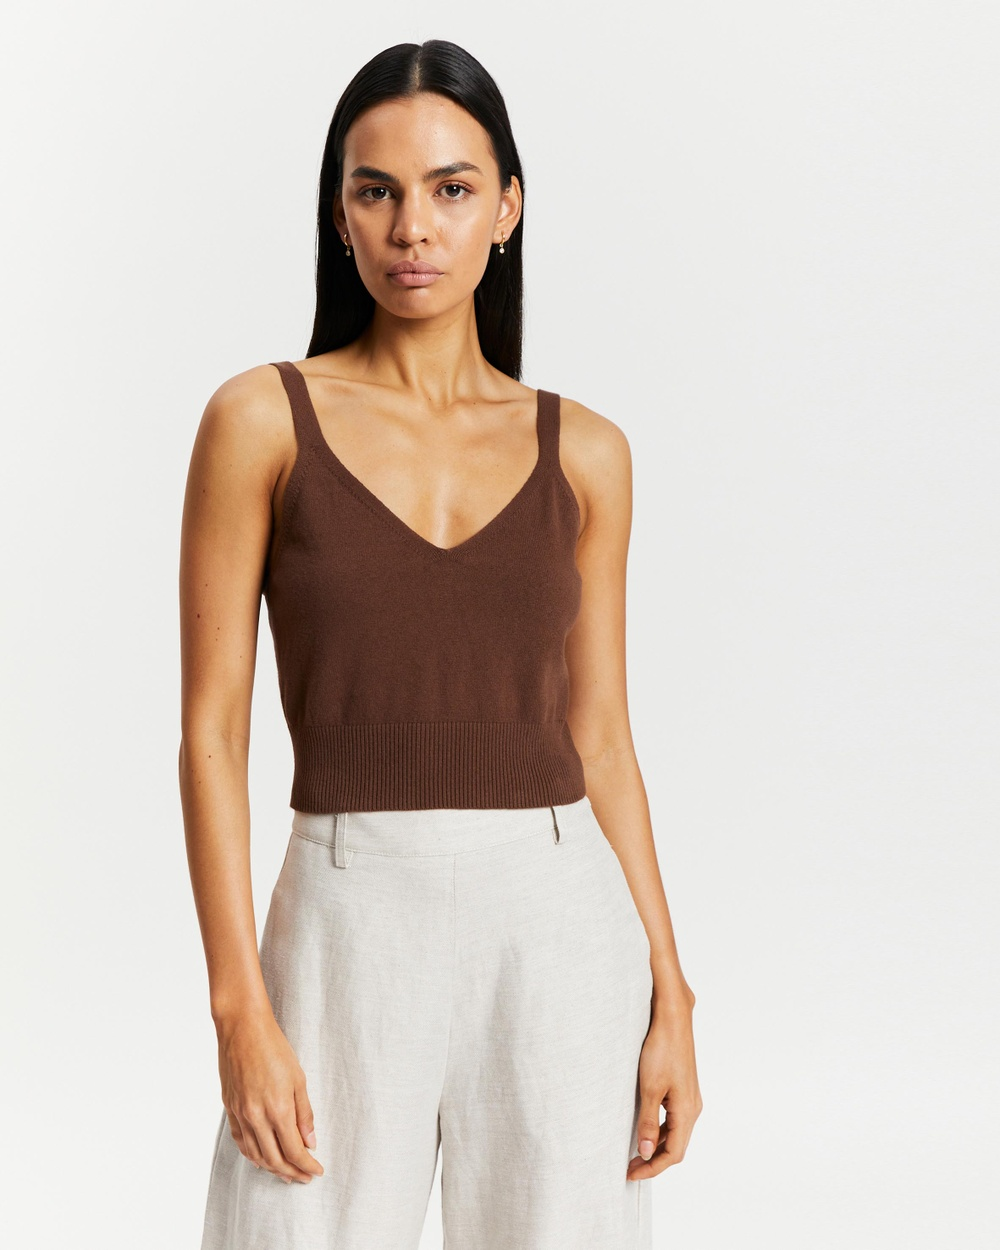 AERE Organic Cotton Cropped Knit Top tops Chocolate